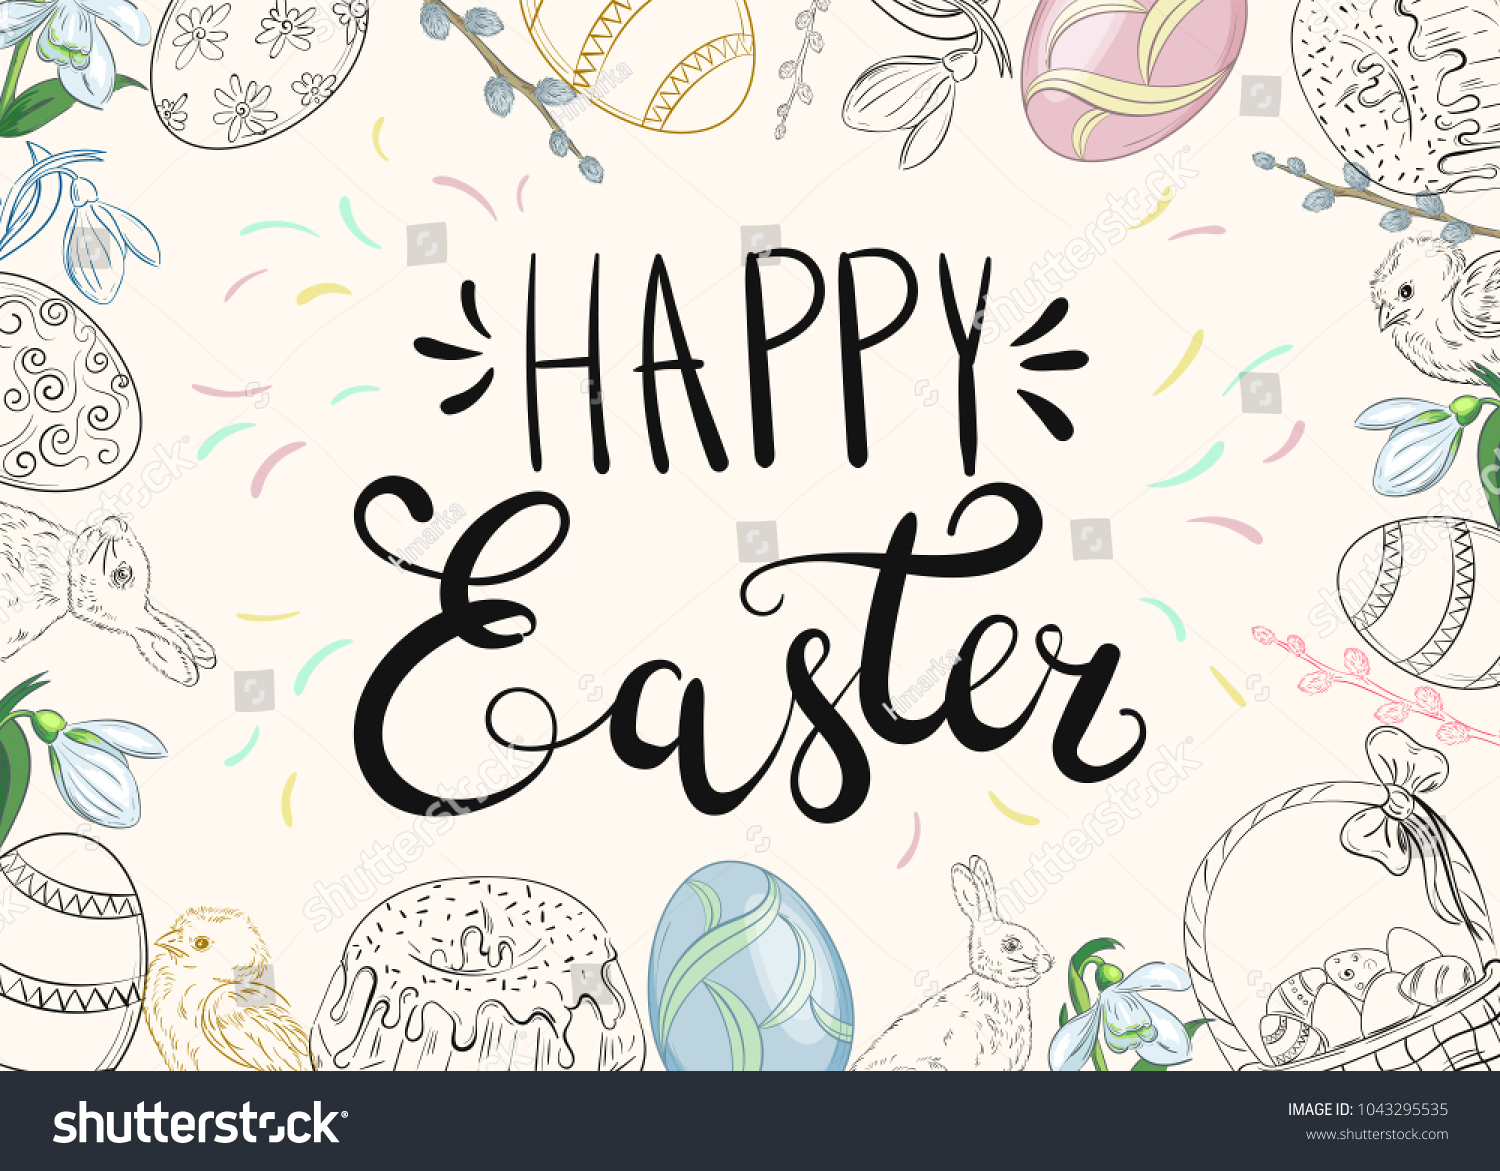 Easter background traditional decorations easter greeting stock easter background with traditional decorations easter greeting with colored eggs festive cake rabbit m4hsunfo Images